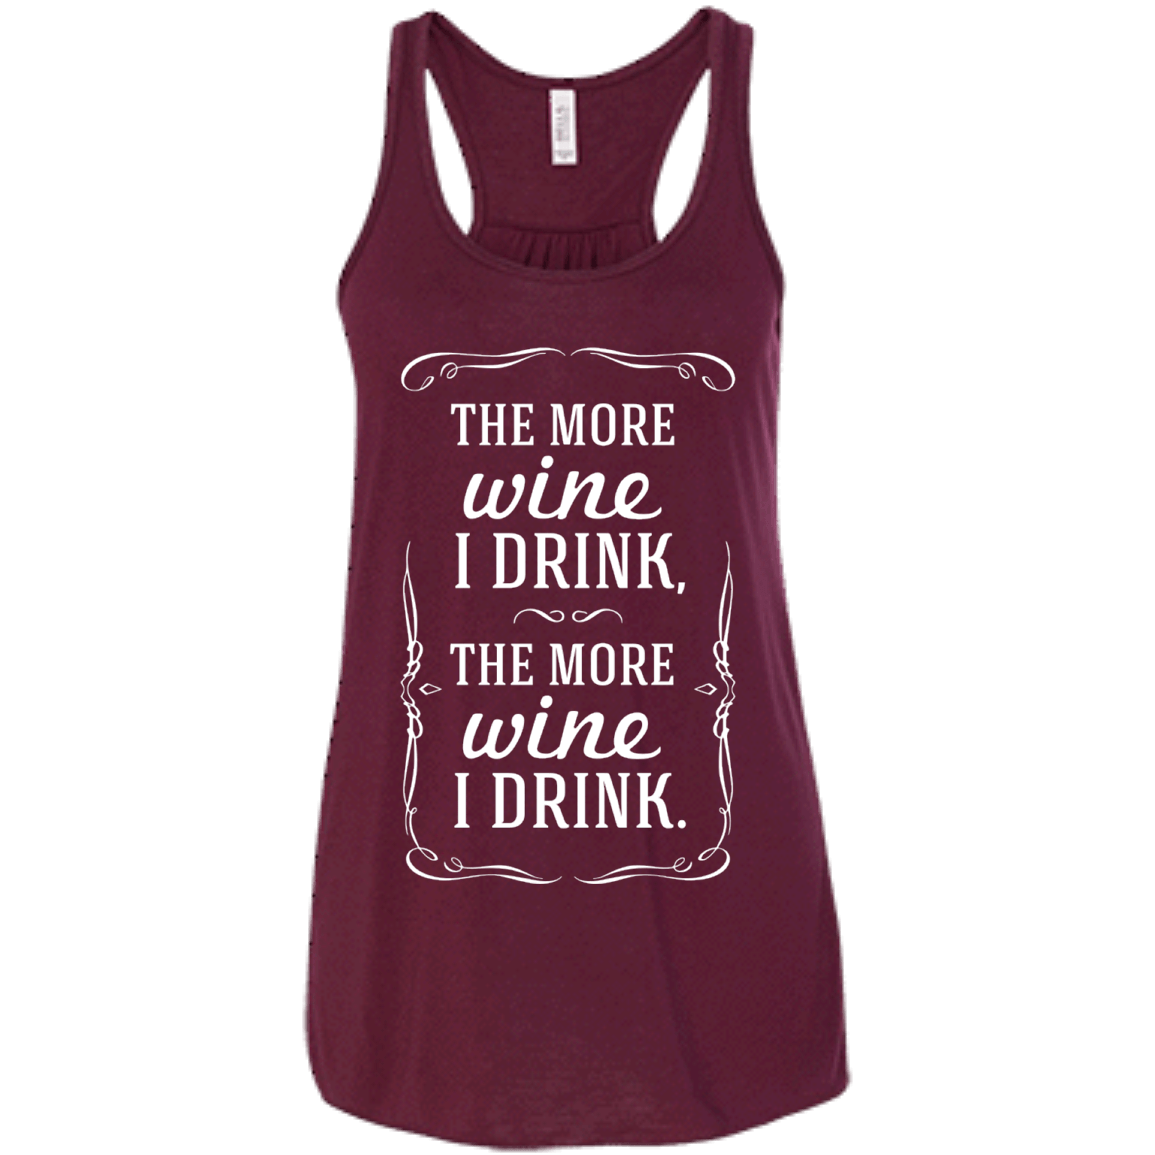 The More Wine I Drink